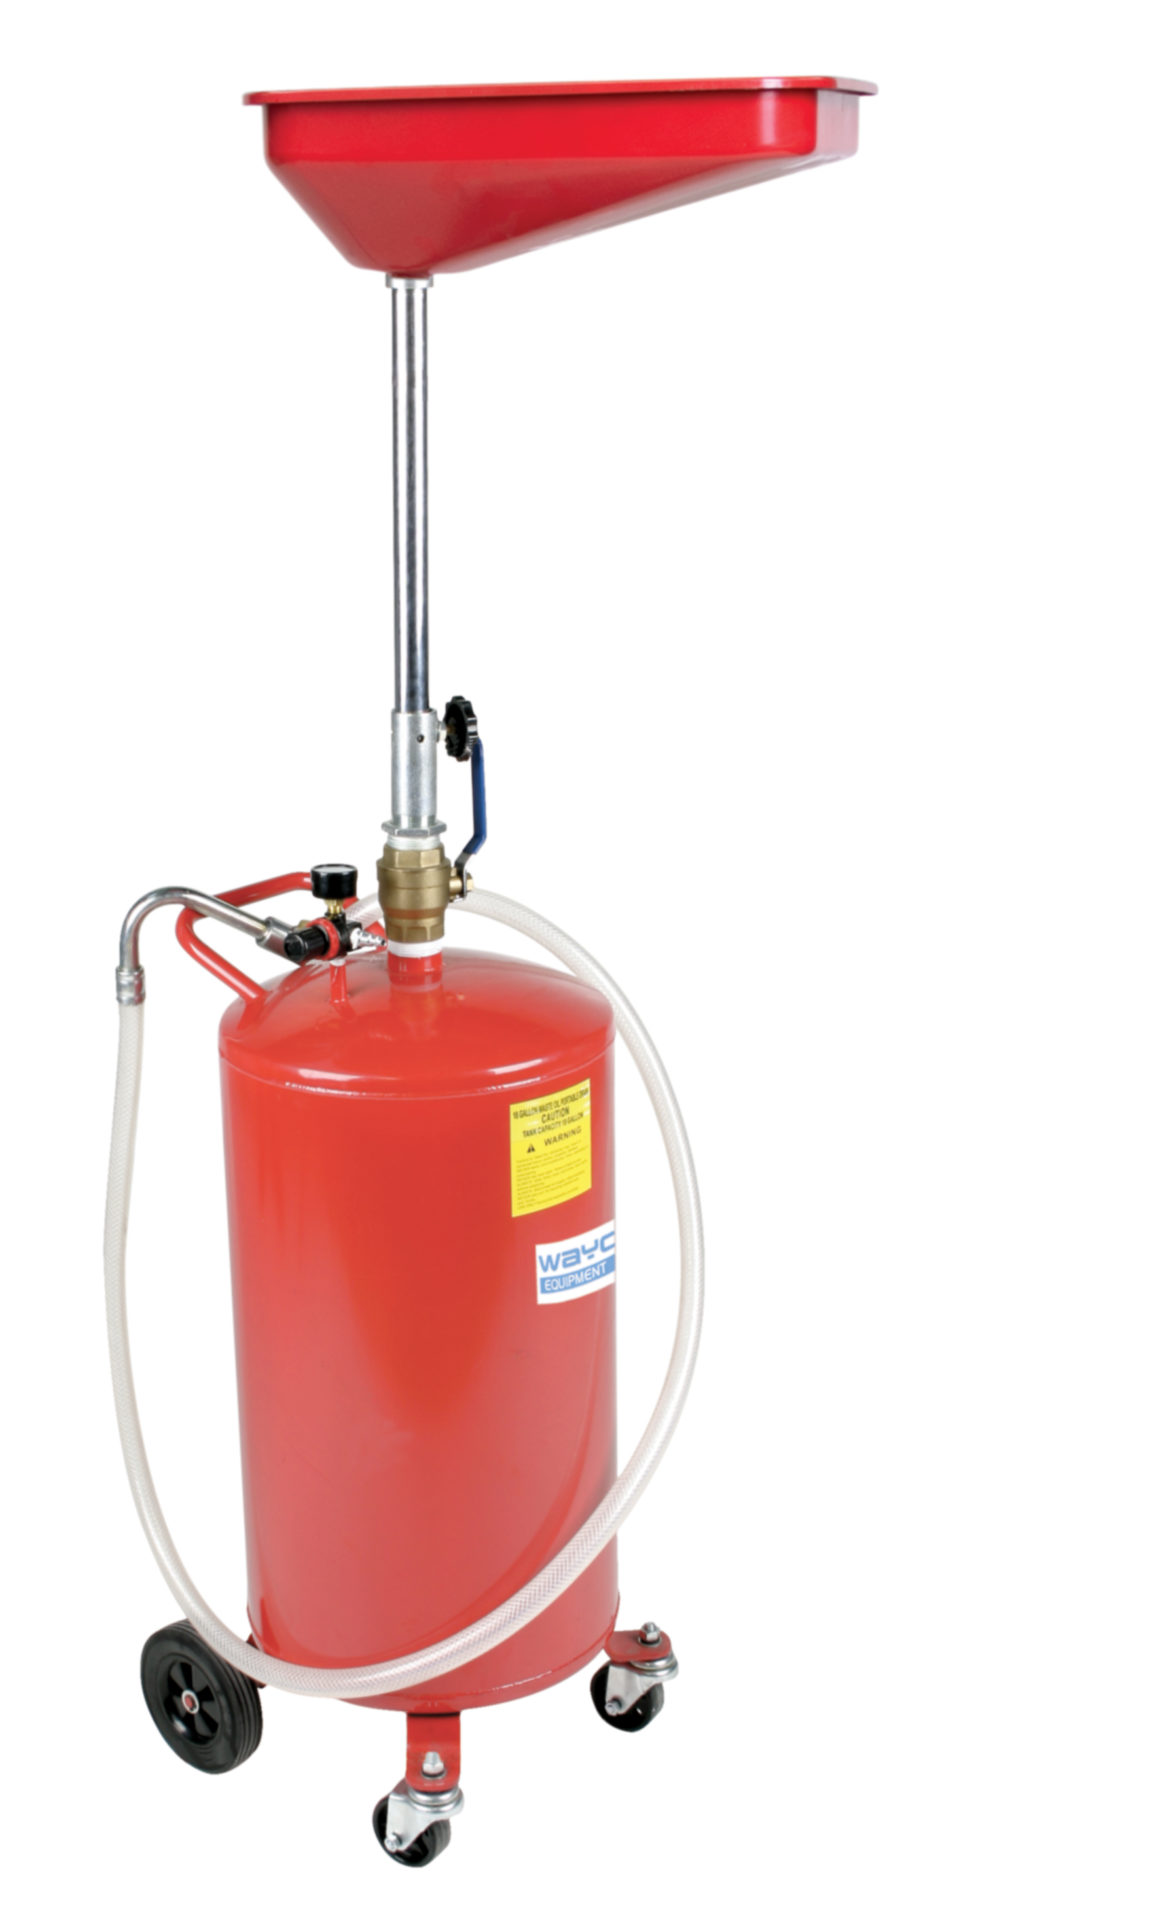 Wayco air operated oil drain 80 litres